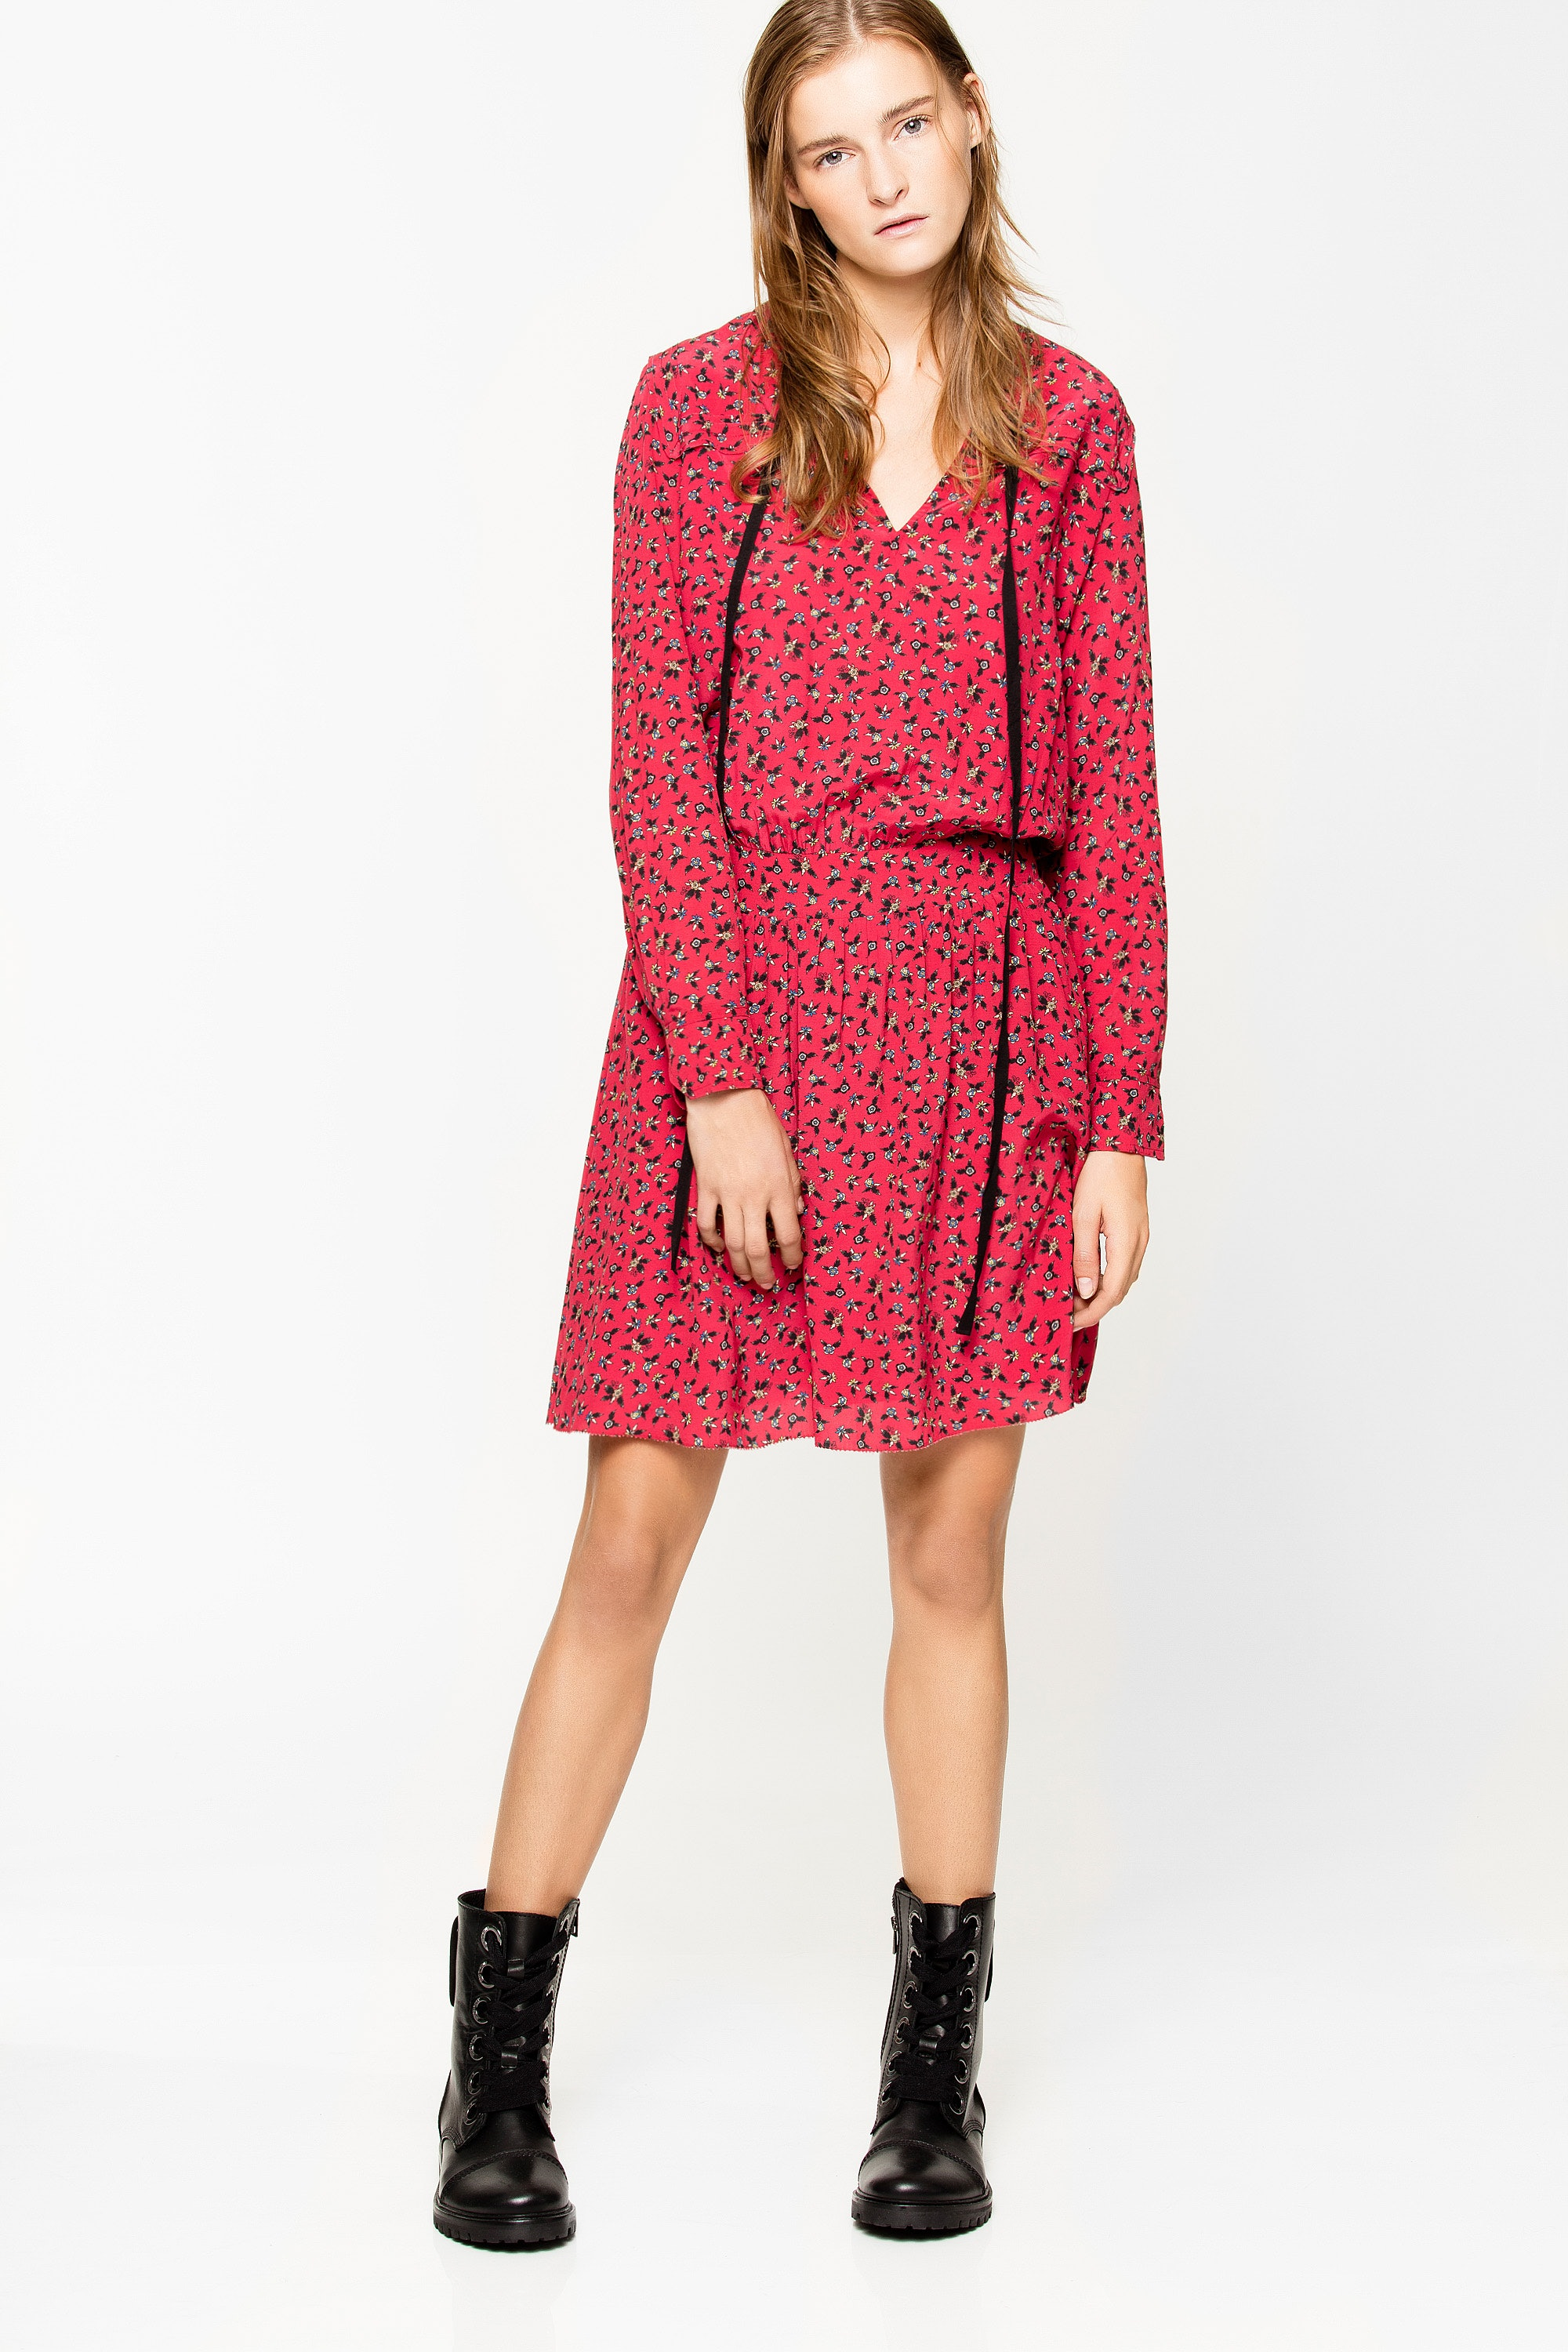 Remus Liberty dress